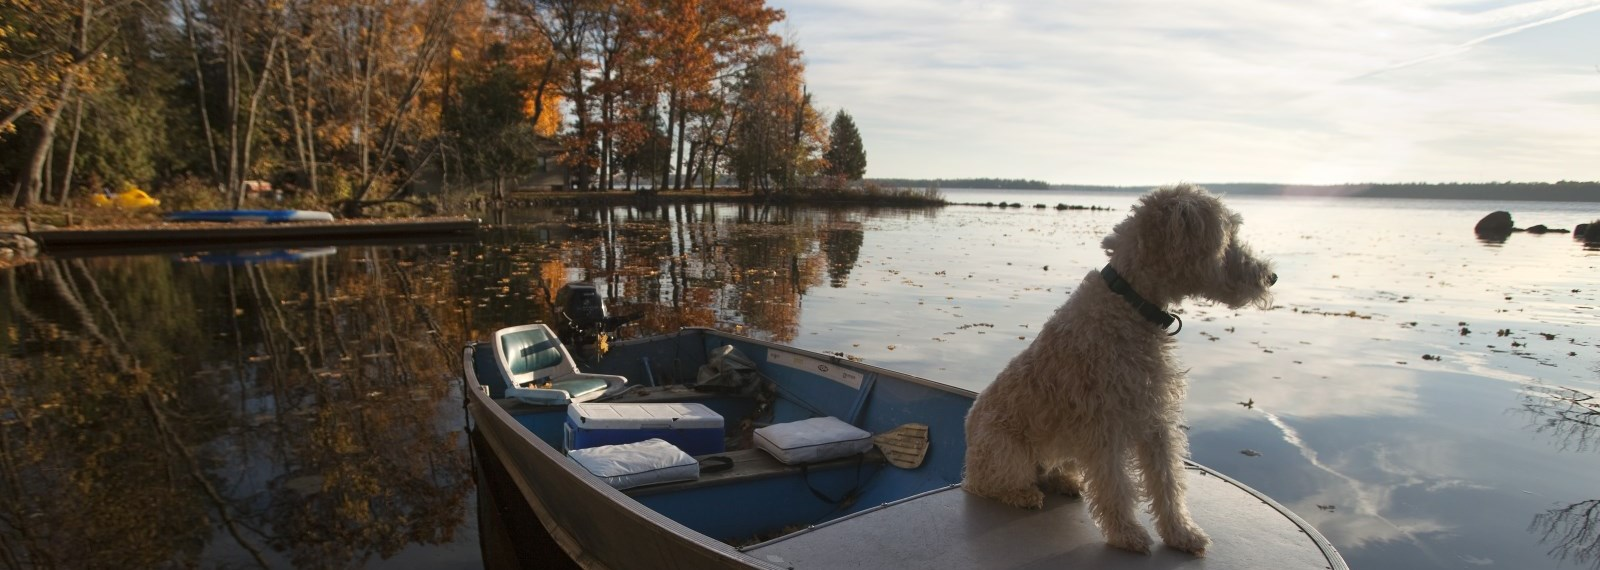 dog sitting on top of a boat